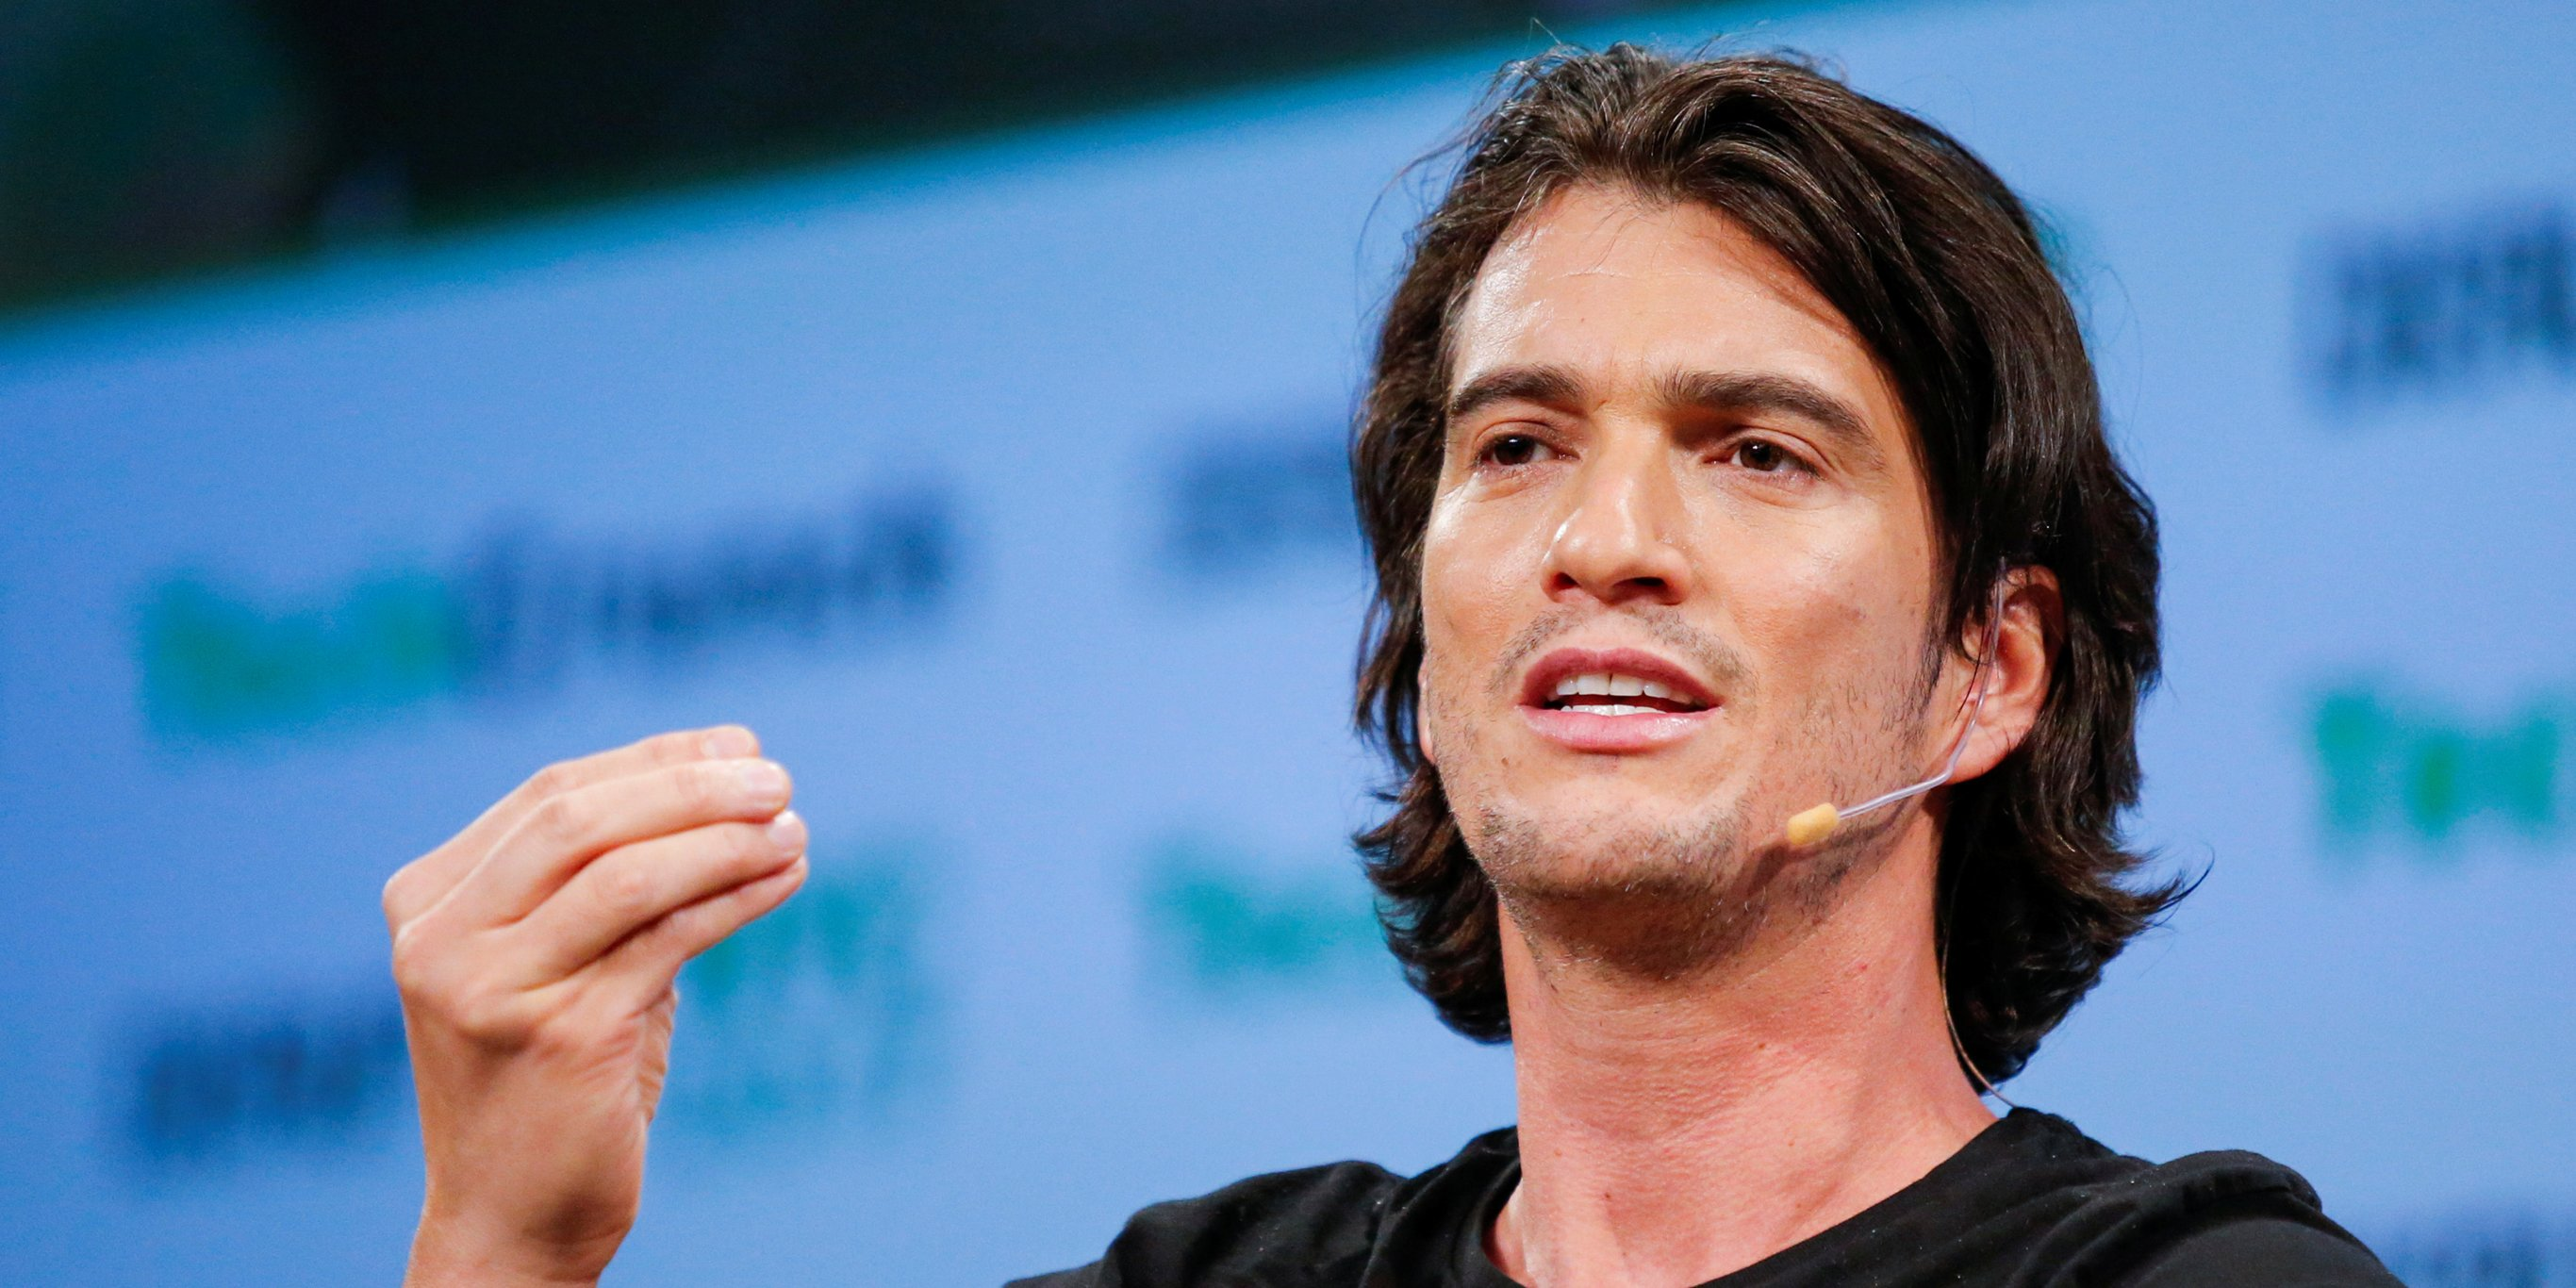 WeWork is reportedly considering big governance changes in order to rescue its flailing IPO